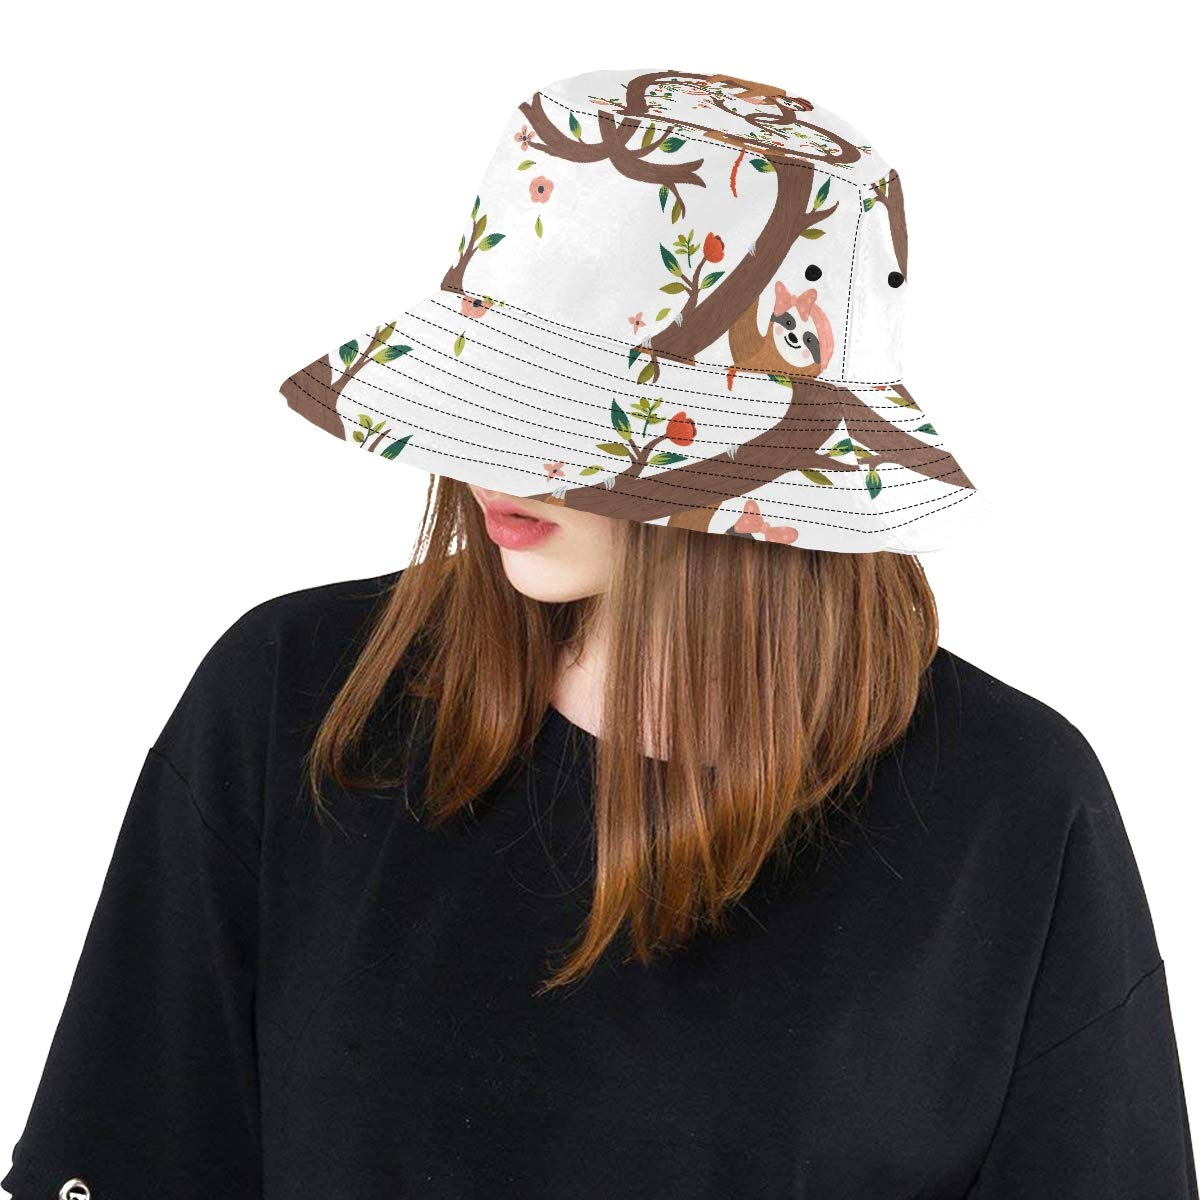 Funny Cartoon Printed Sloths New Summer Unisex Cotton Fashion Fishing Sun Bucket Hats for Kid Teens Women and Men with Customize Top Packable Fisherman Cap for Outdoor Travel